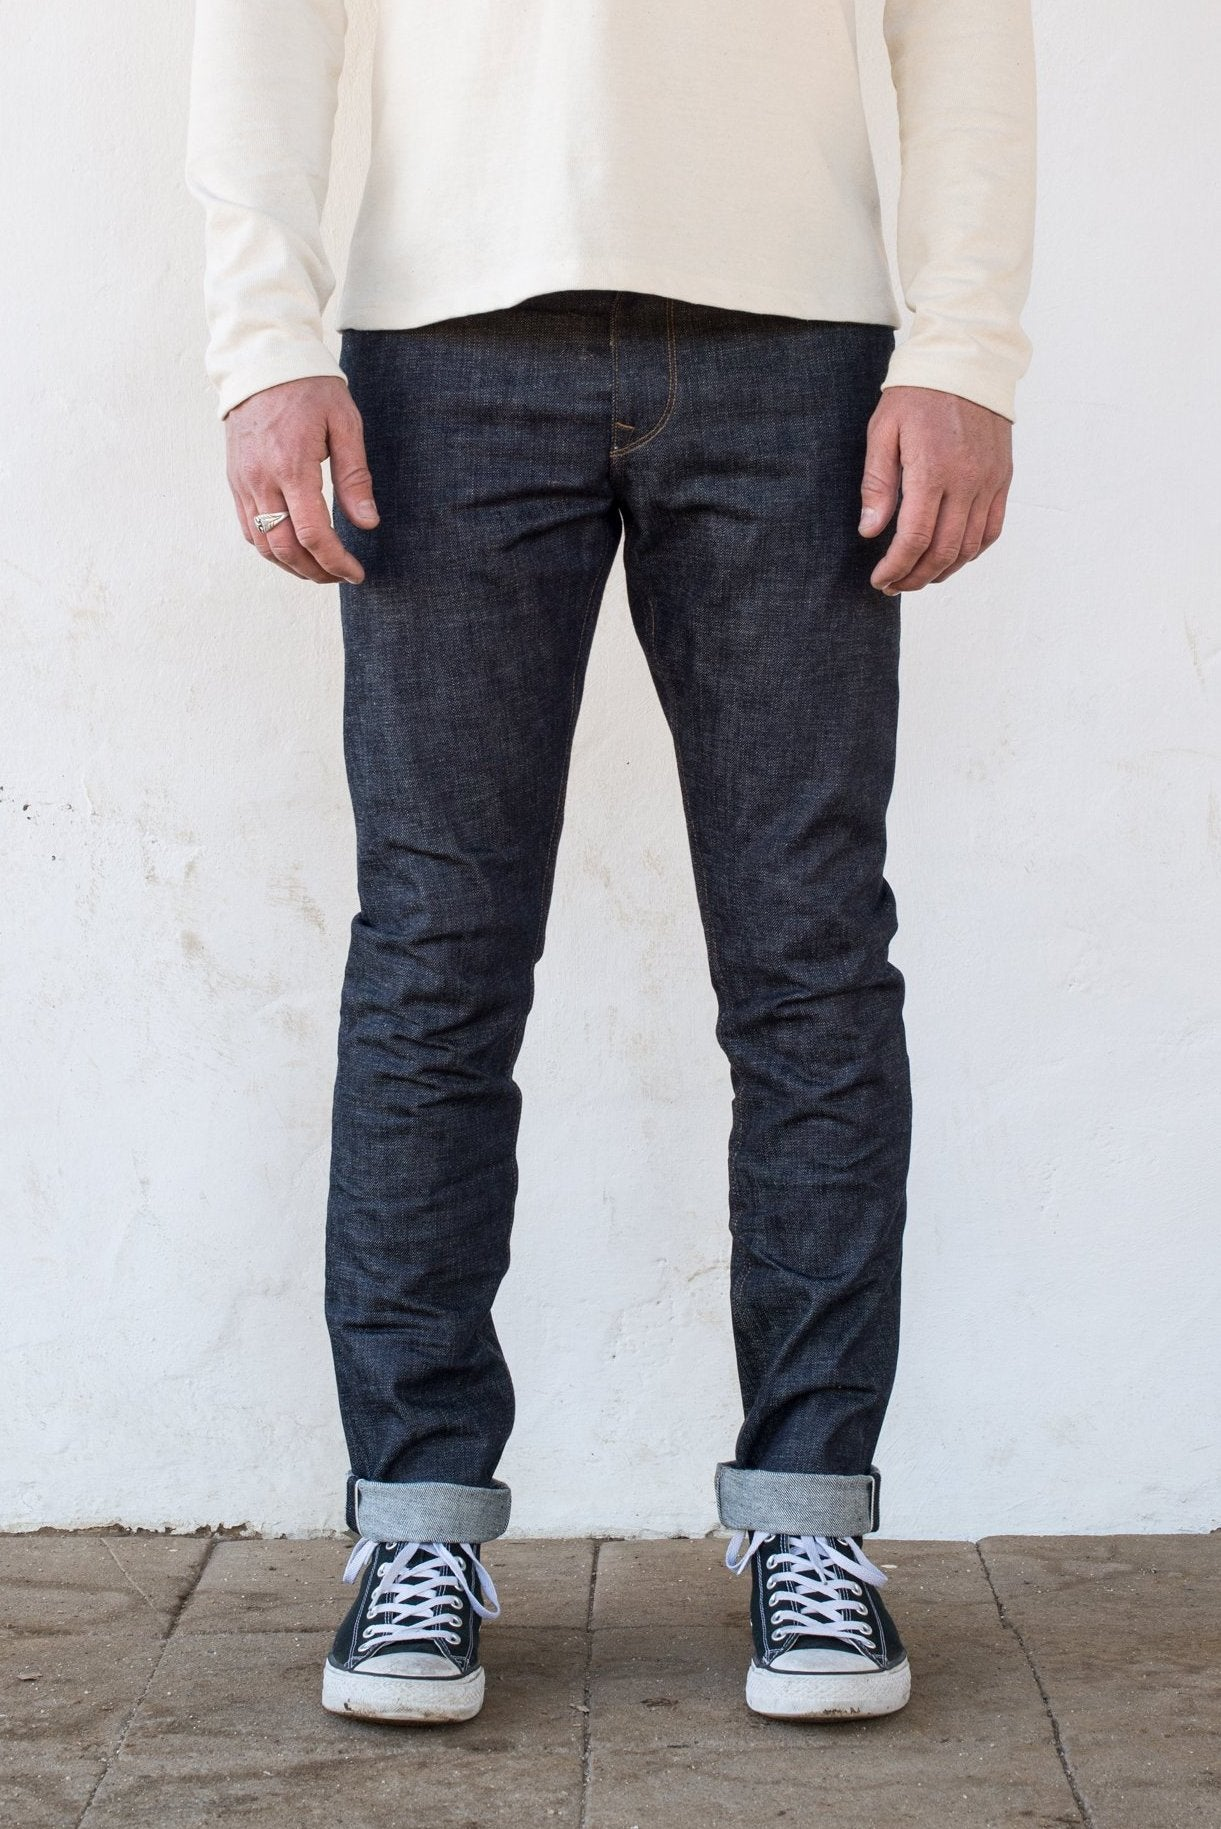 Freenote Cloth | Avila 13 oz Natural Indigo On Body (fs) | $250